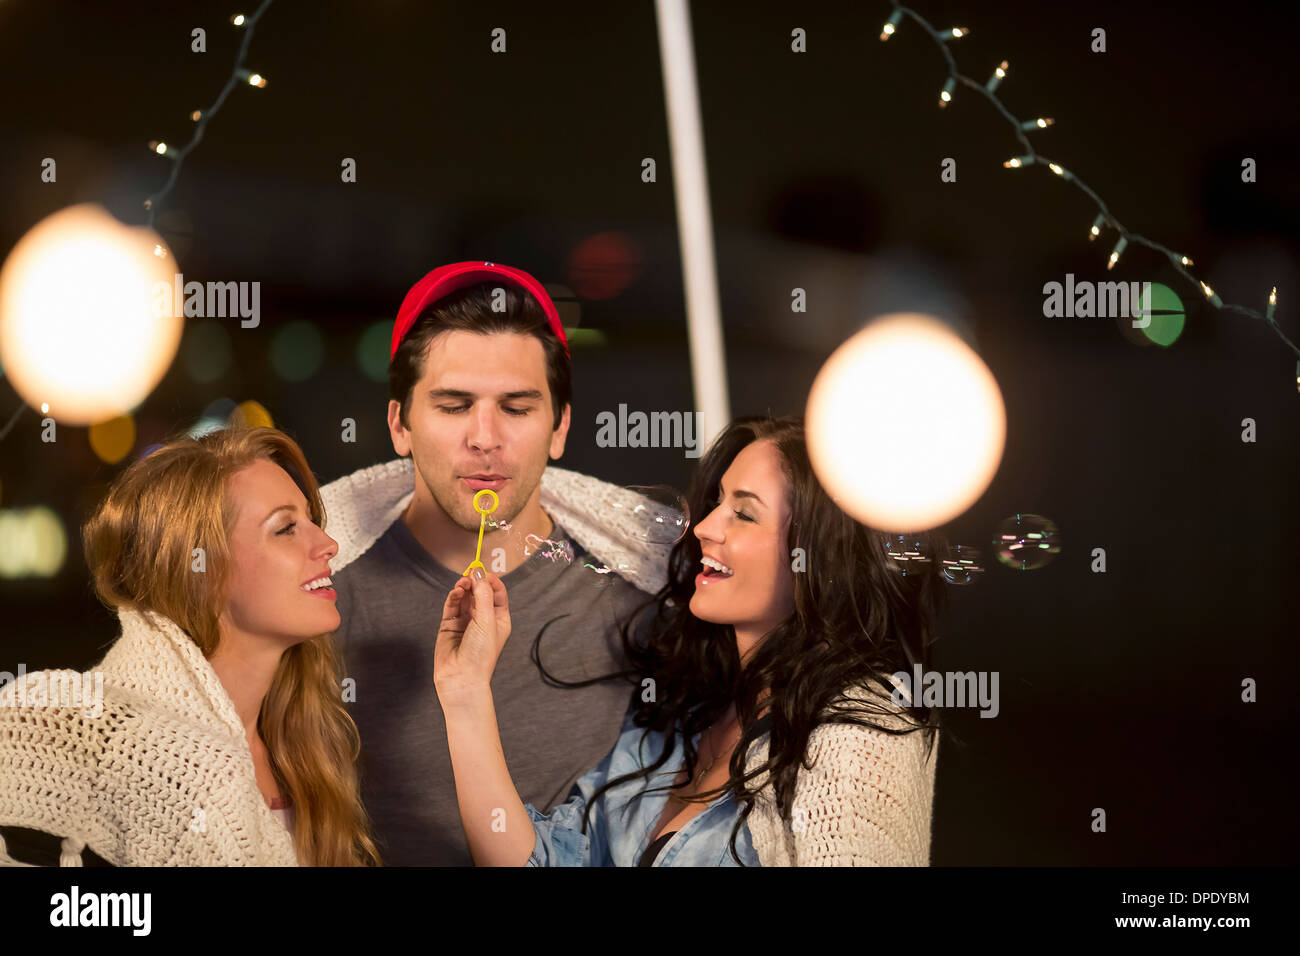 Young adult friends blowing bubbles at rooftop party - Stock Image